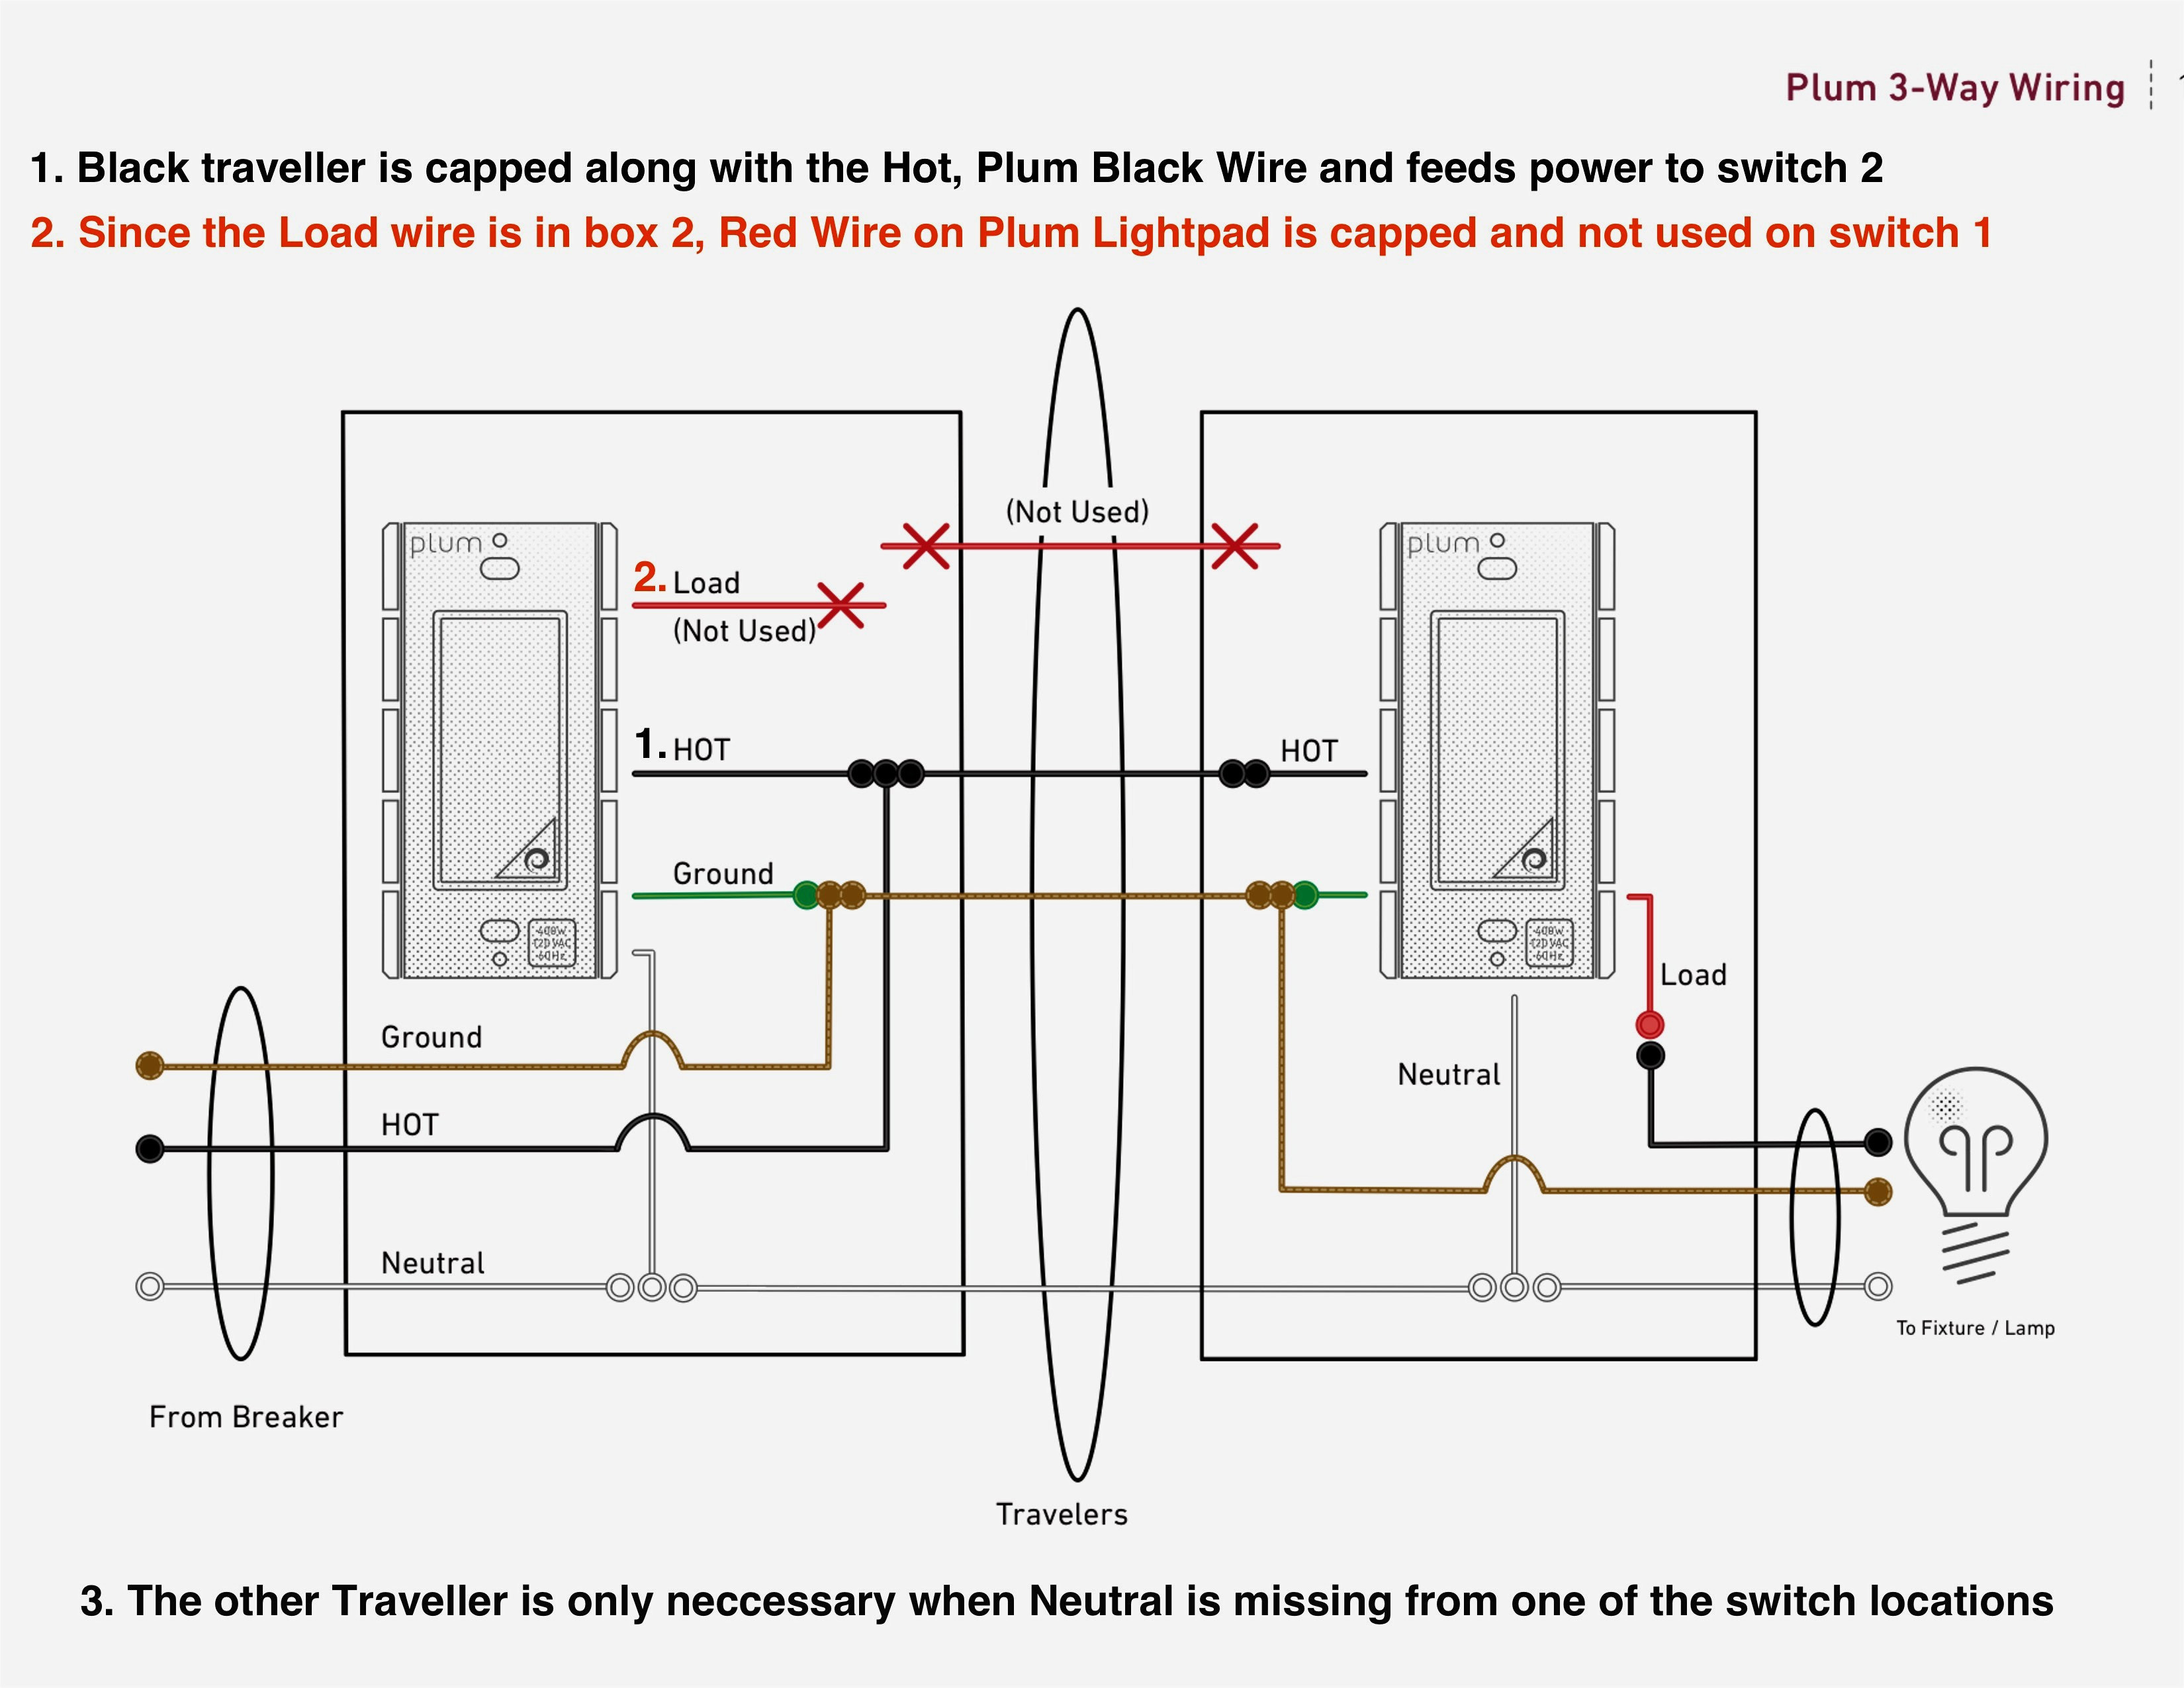 Rs485 Wiring Diagram - Callingallquestions - Rs485 Wiring Diagram